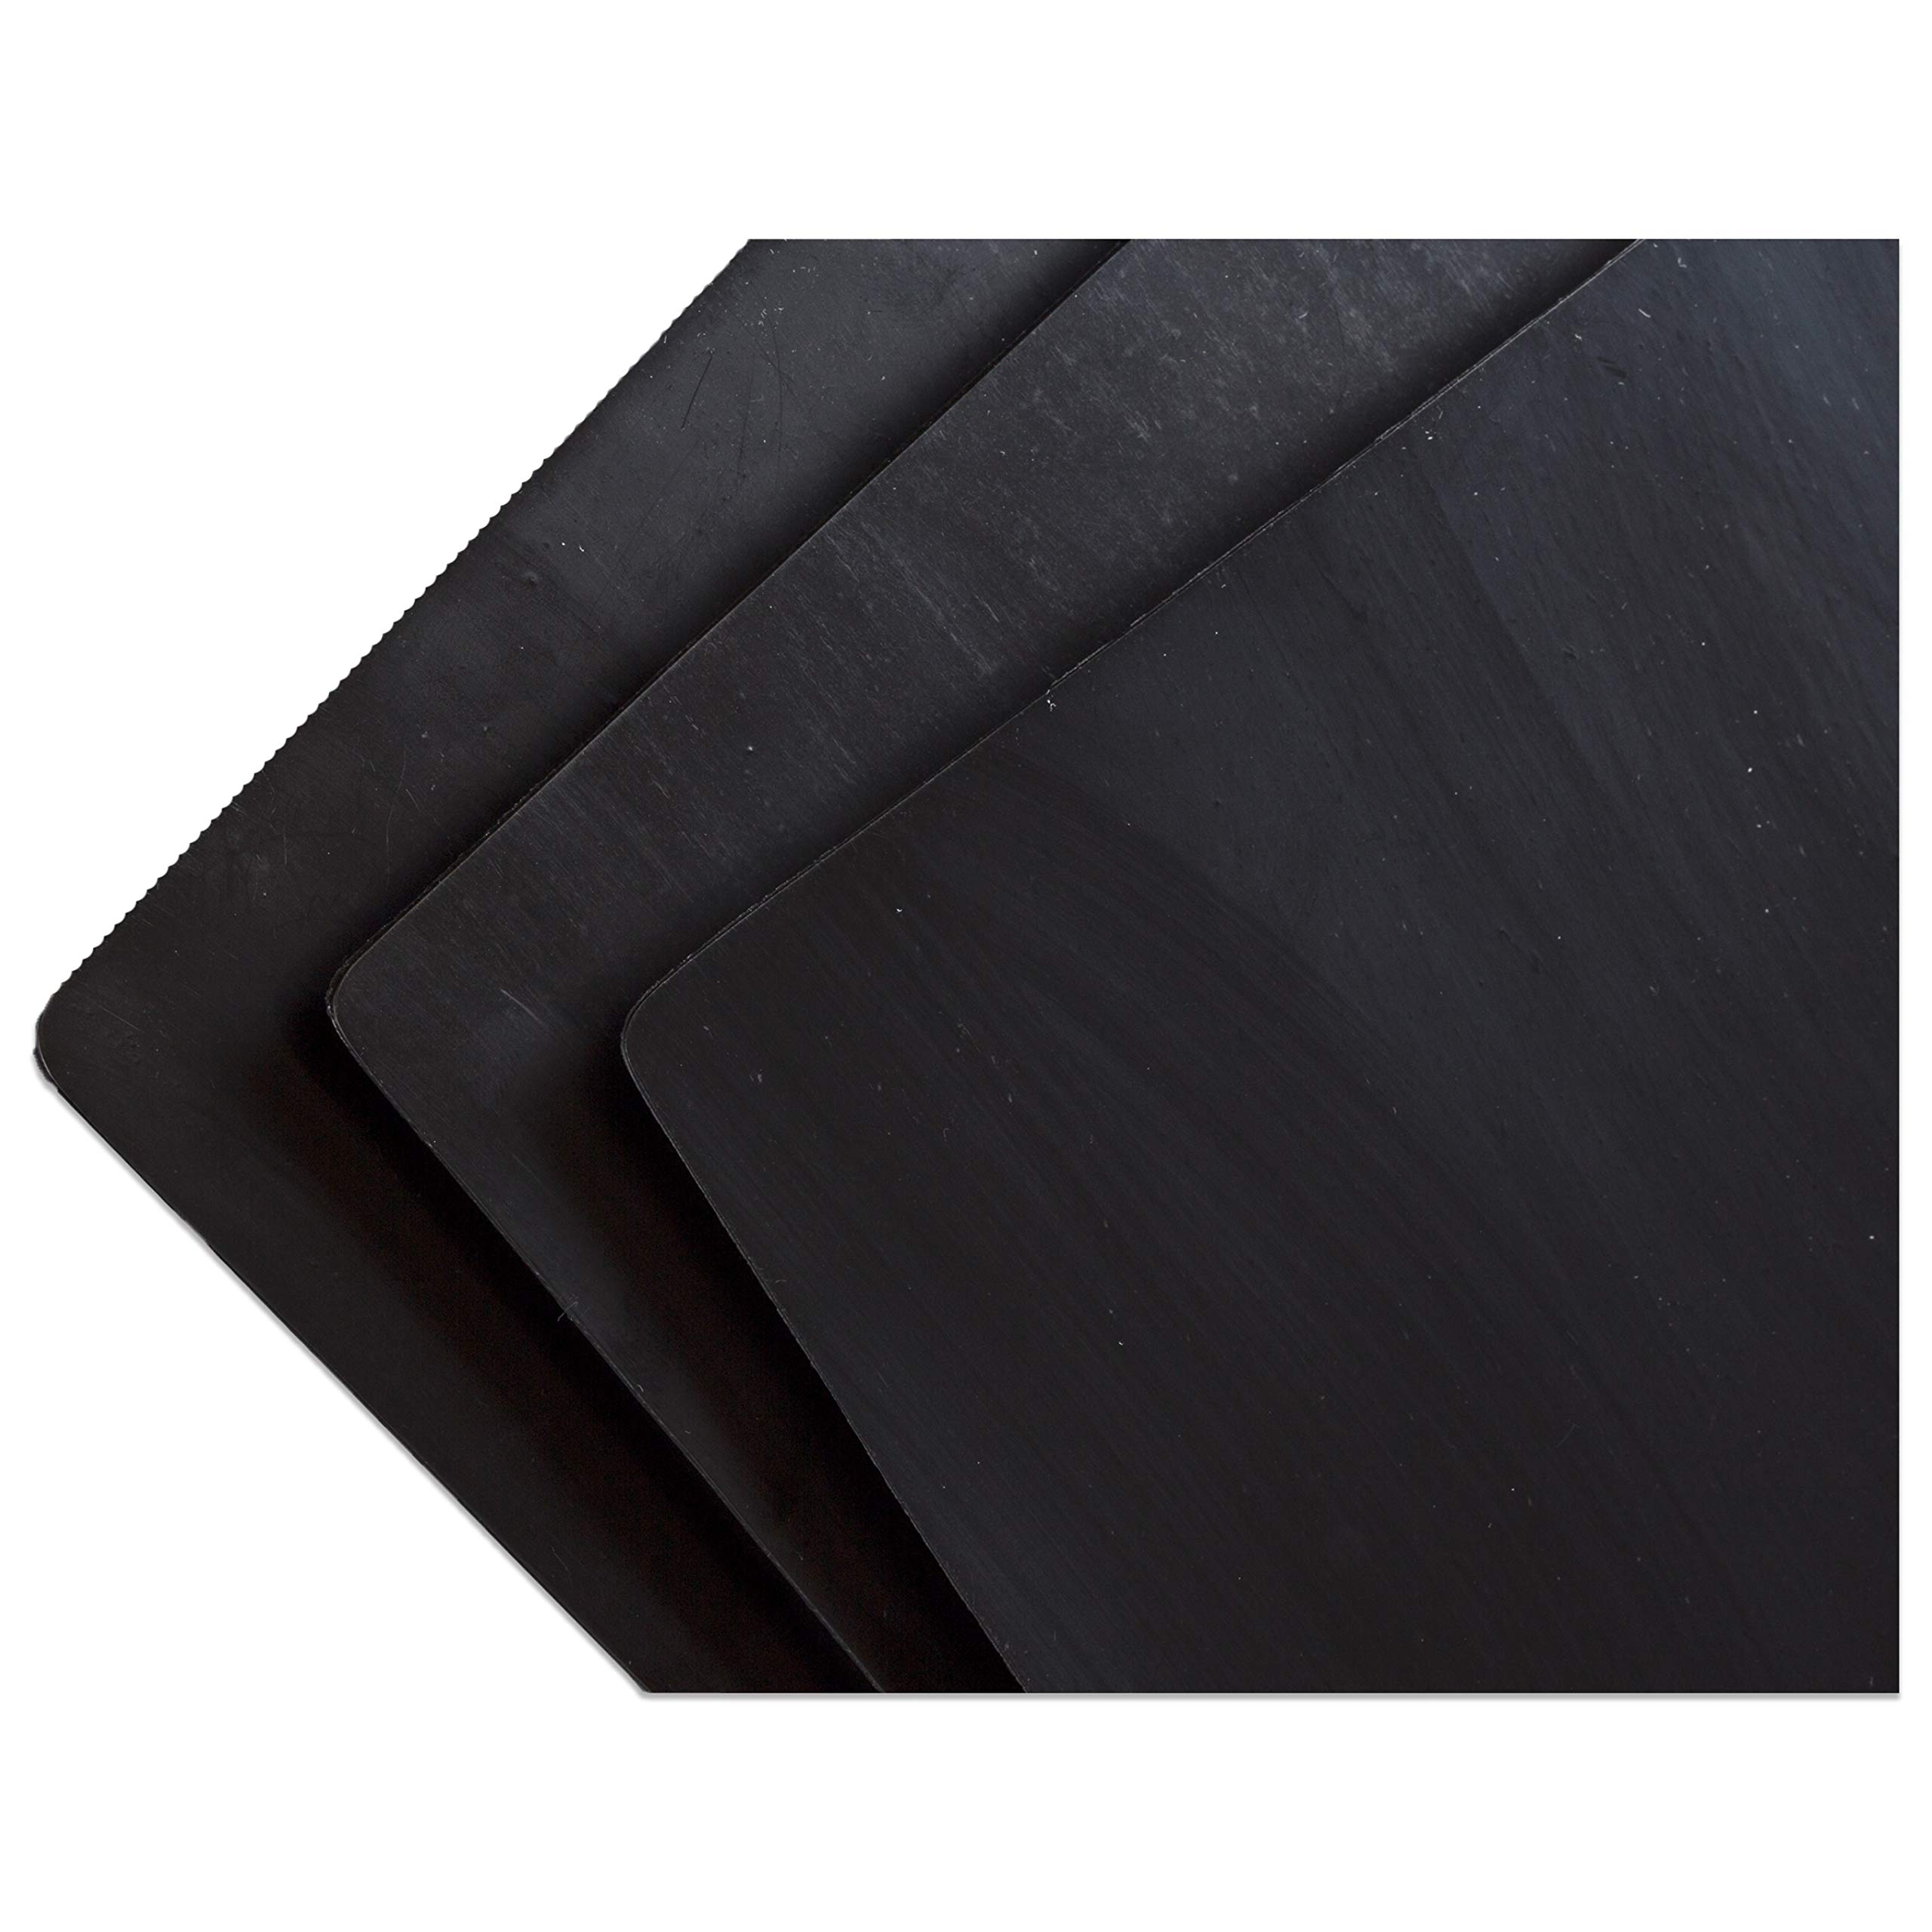 PolyGuard Liners LLDPE - 5 ft. x 45 ft. - 20 Mil Pond Liner by PolyGuard